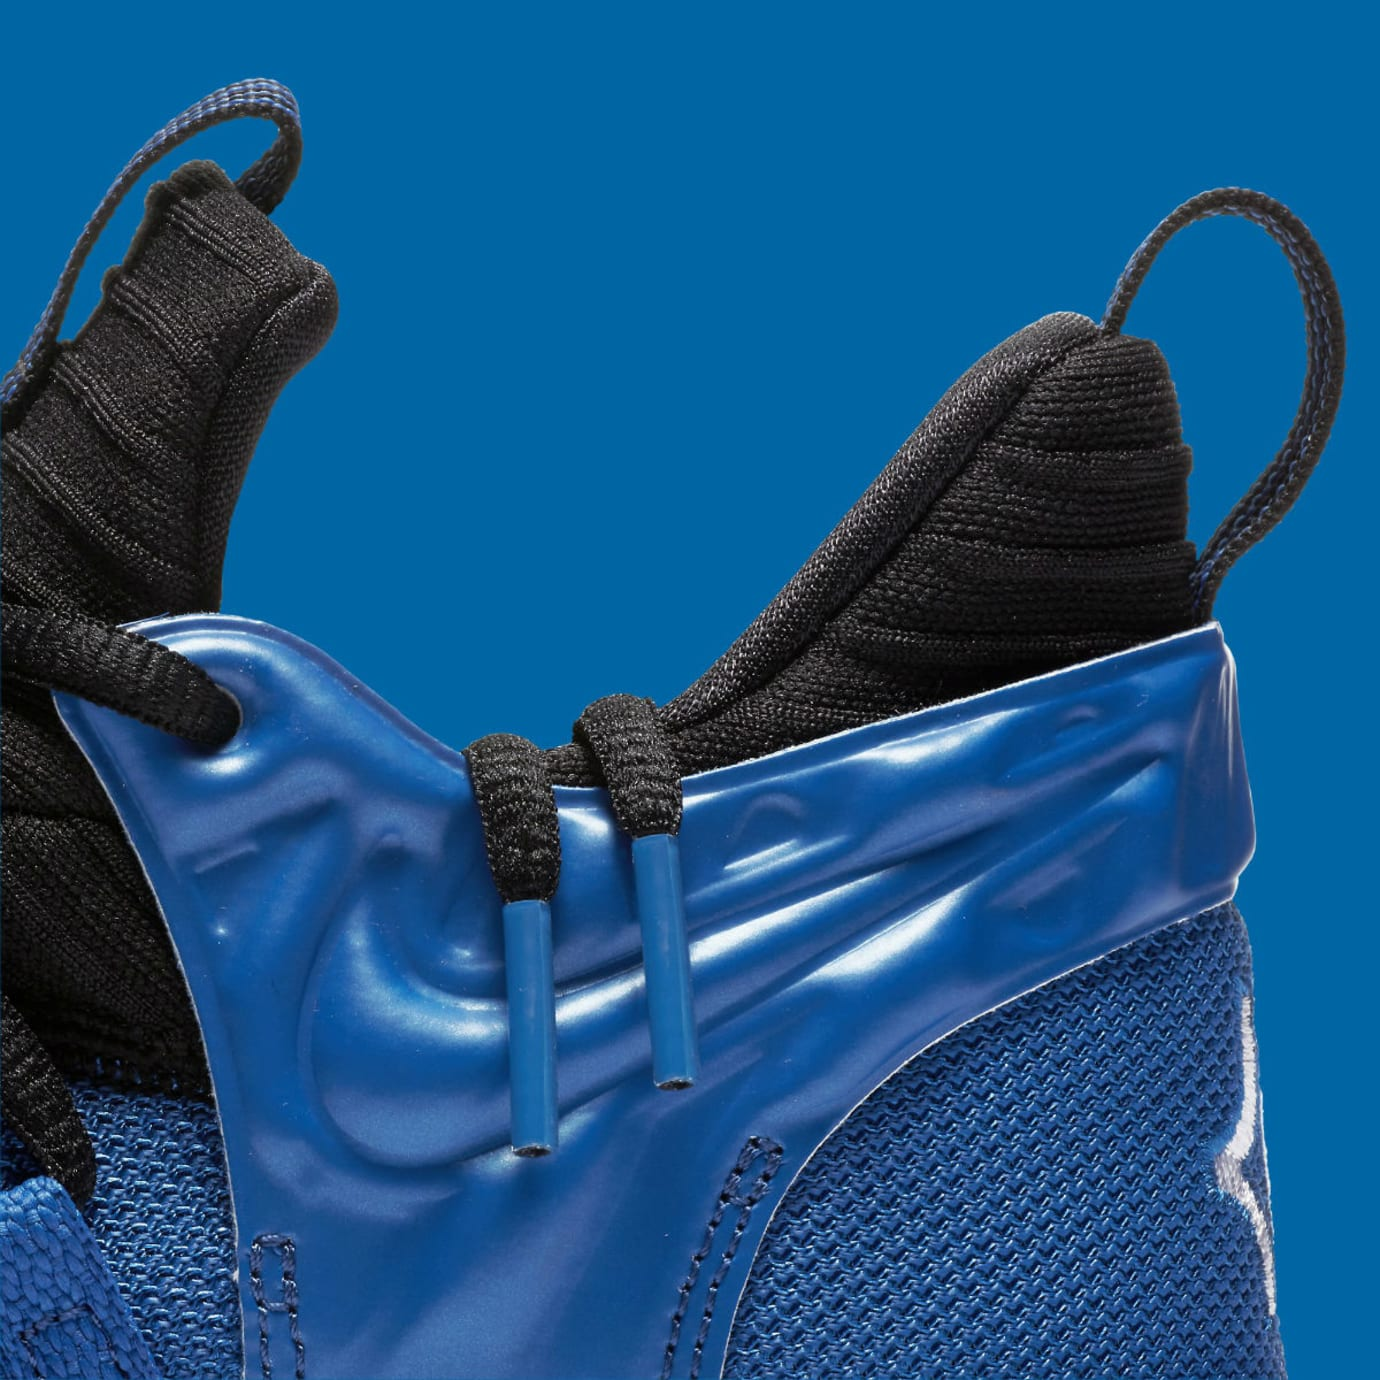 Nike KD 10 GS Foamposite Royal Release Date AJ7220-500 Collar